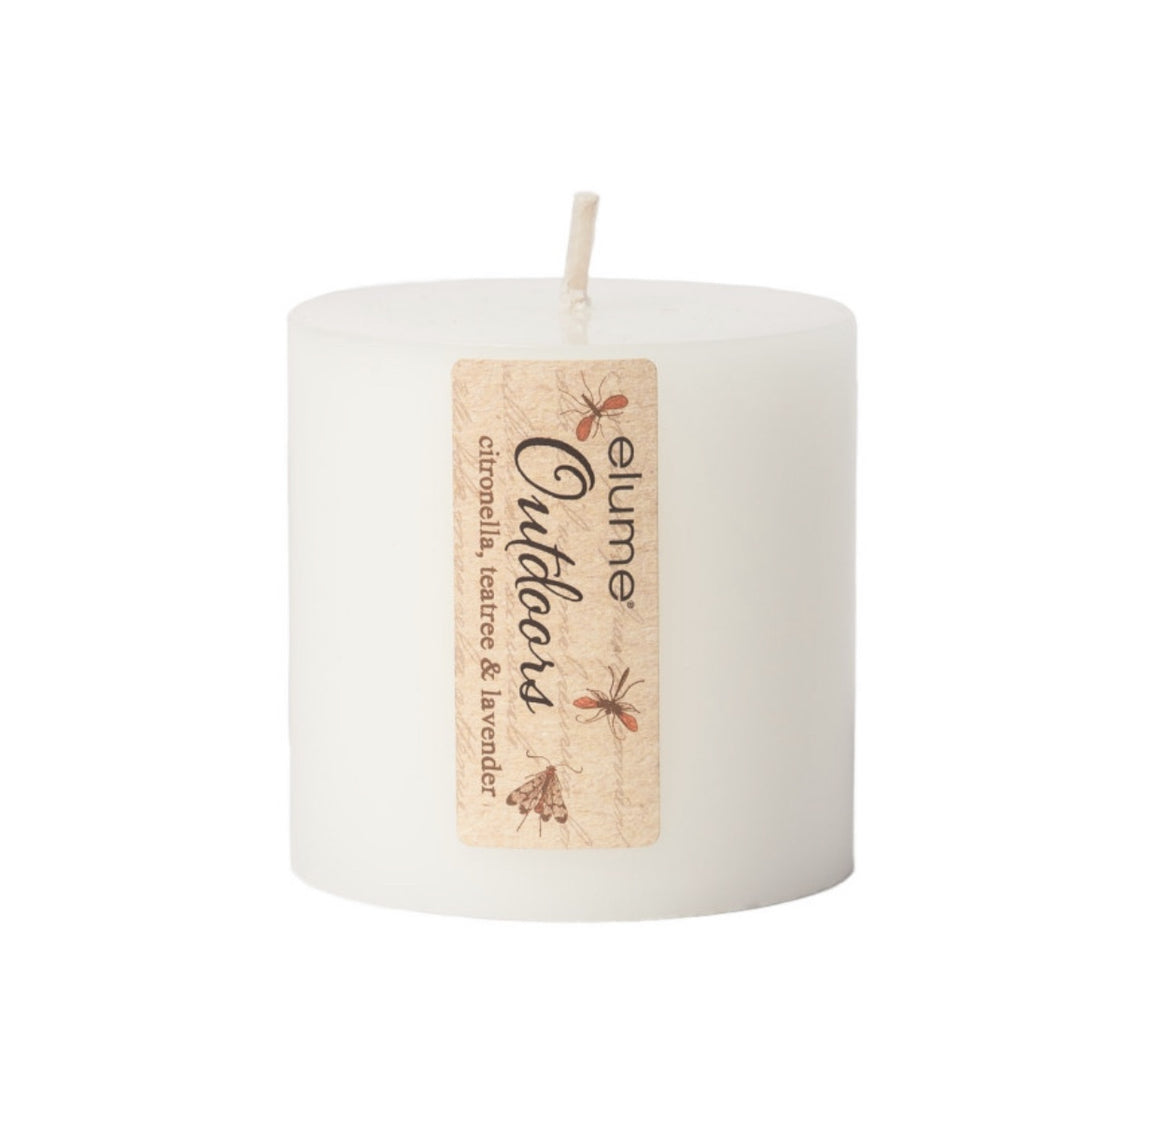 Candle Citronella Outdoors